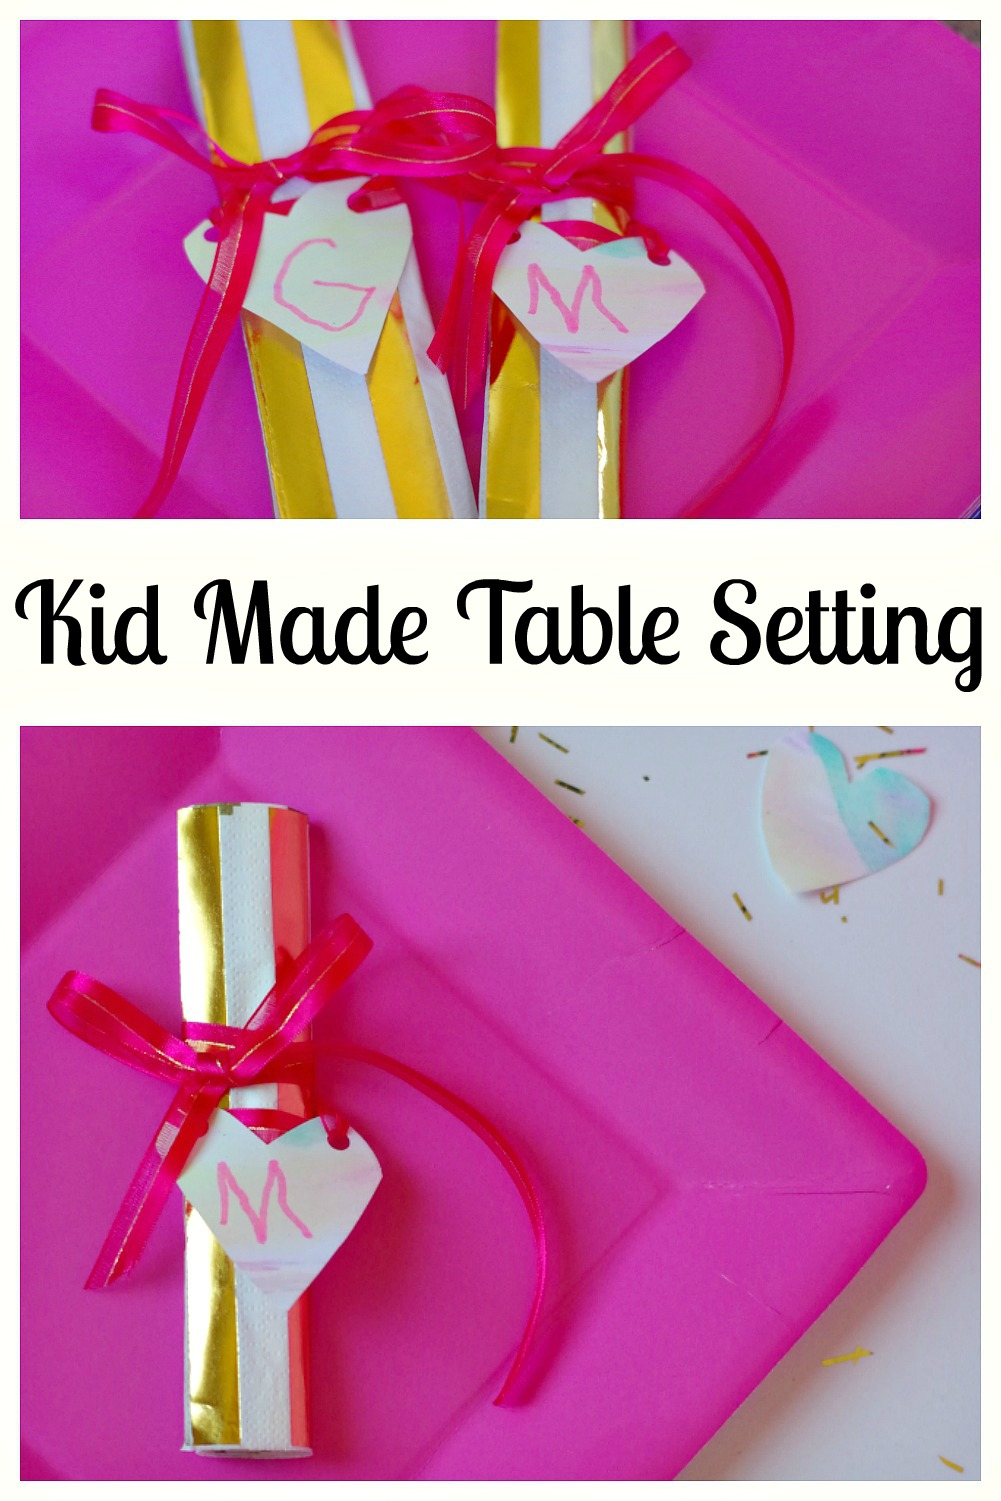 If your kids love crafts, then how about letting them be involved with a kid made table setting especially for mother's day. Not only will it be an enjoyable activity for the kids to undertake, but it will be incredibly special for mom to see the result. Table settings can also be easily tailored to suit birthday's or other special occasions. It is the prefect decoration that the whole family will be able to enjoy.